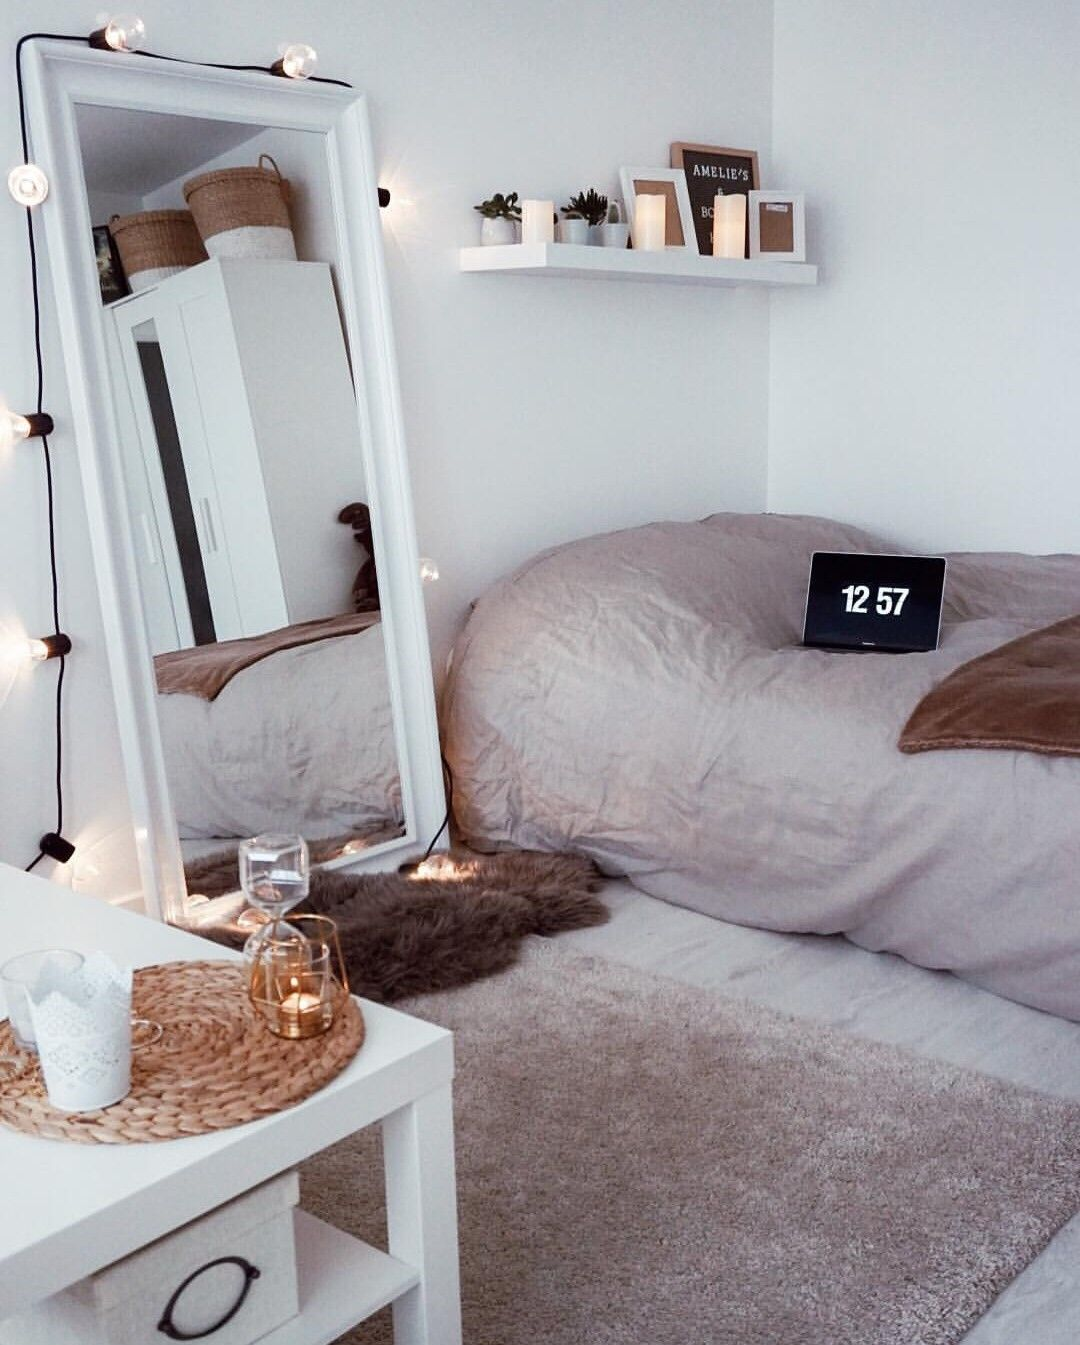 Pinterest Trinitie99 Dorm Room Ideas For Girls Minimalist Cozy Neutrals Bedroom Decor Bedroom Design Awesome Bedrooms